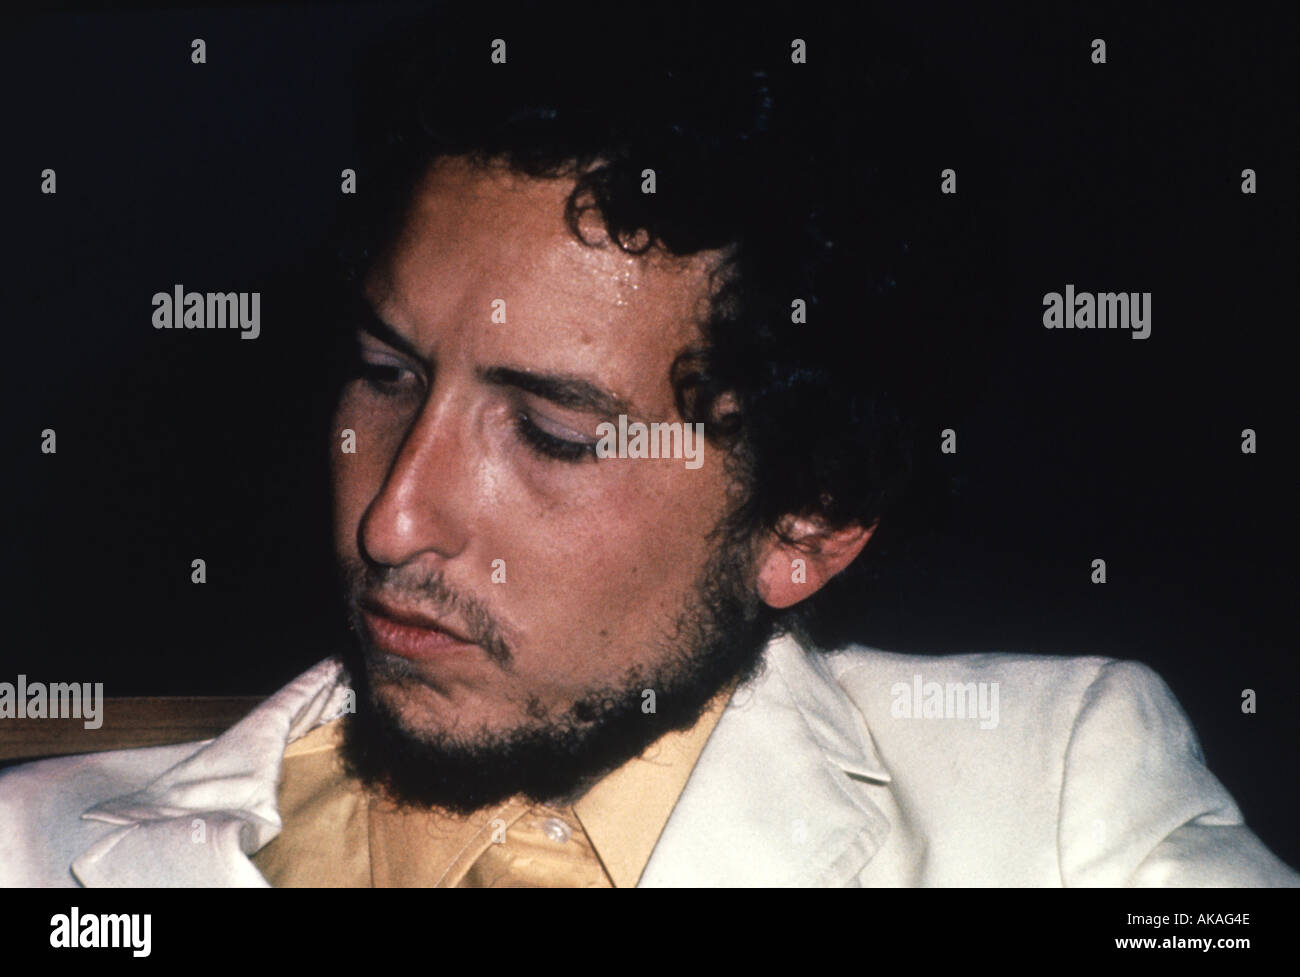 BOB DYLAN at the Isle of Wight Festival in 1969 - Stock Image